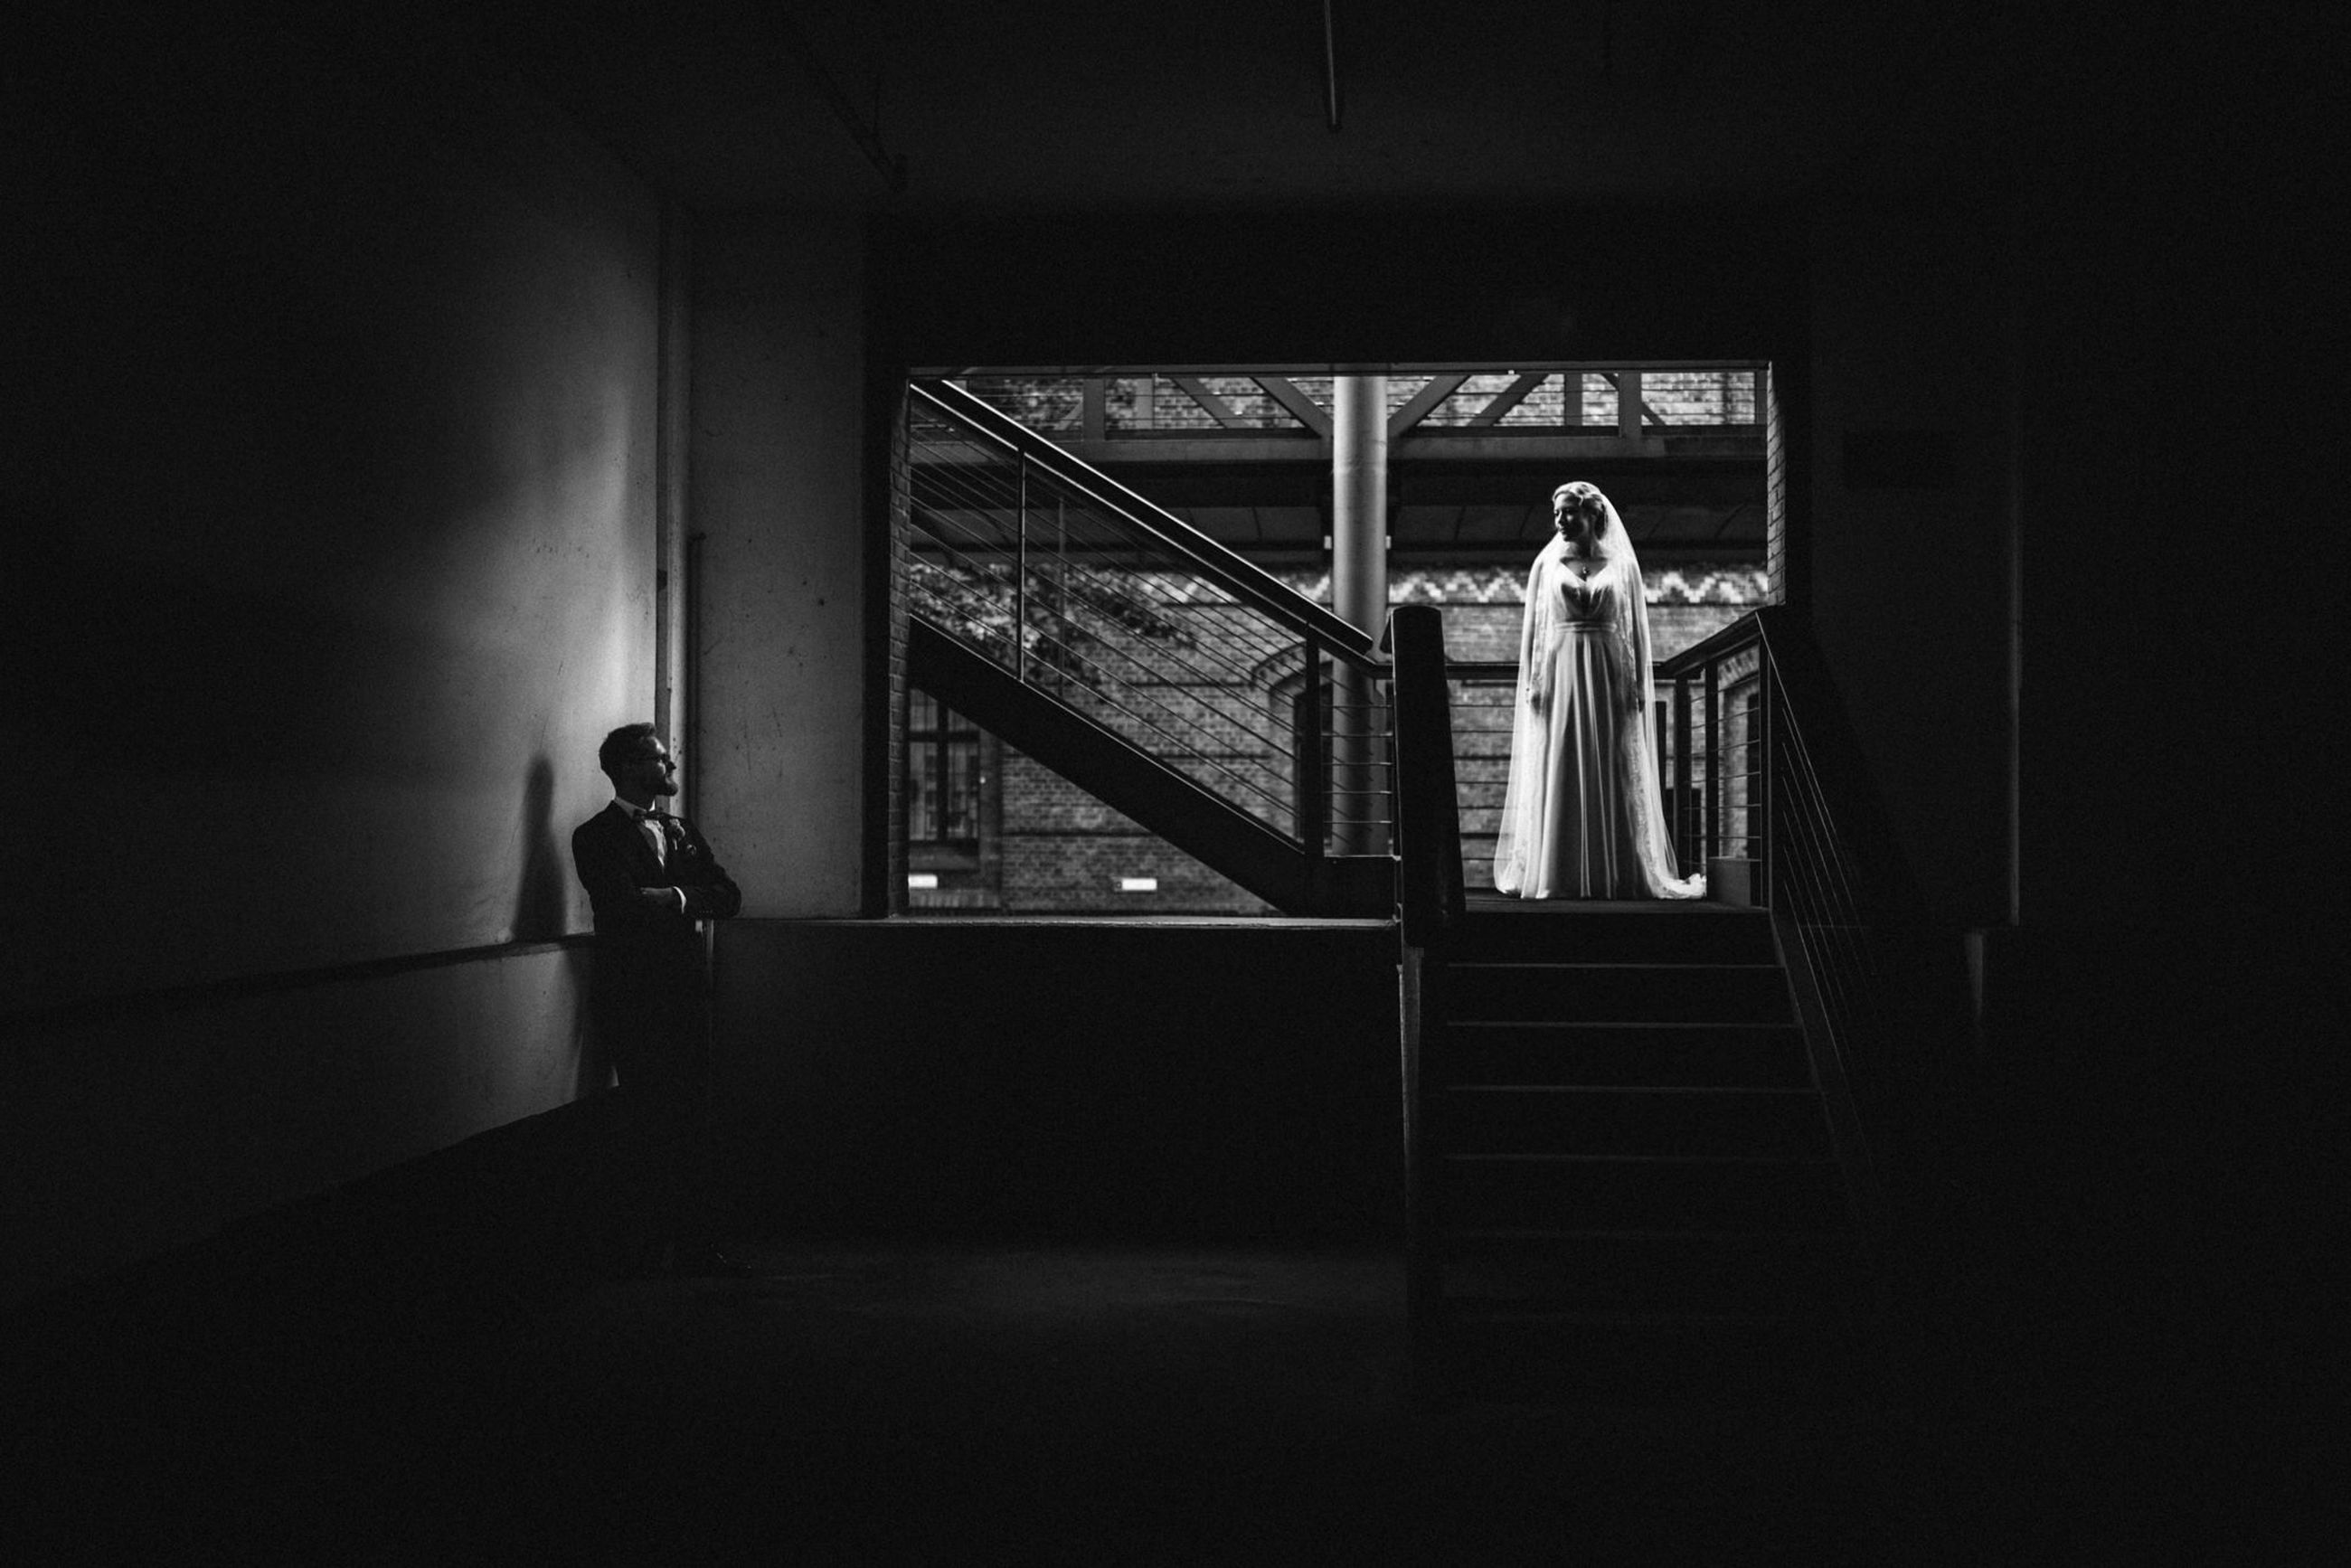 indoors, architecture, railing, men, real people, built structure, staircase, standing, full length, women, rear view, people, adult, two people, building, day, lifestyles, wedding dress, steps and staircases, couple - relationship